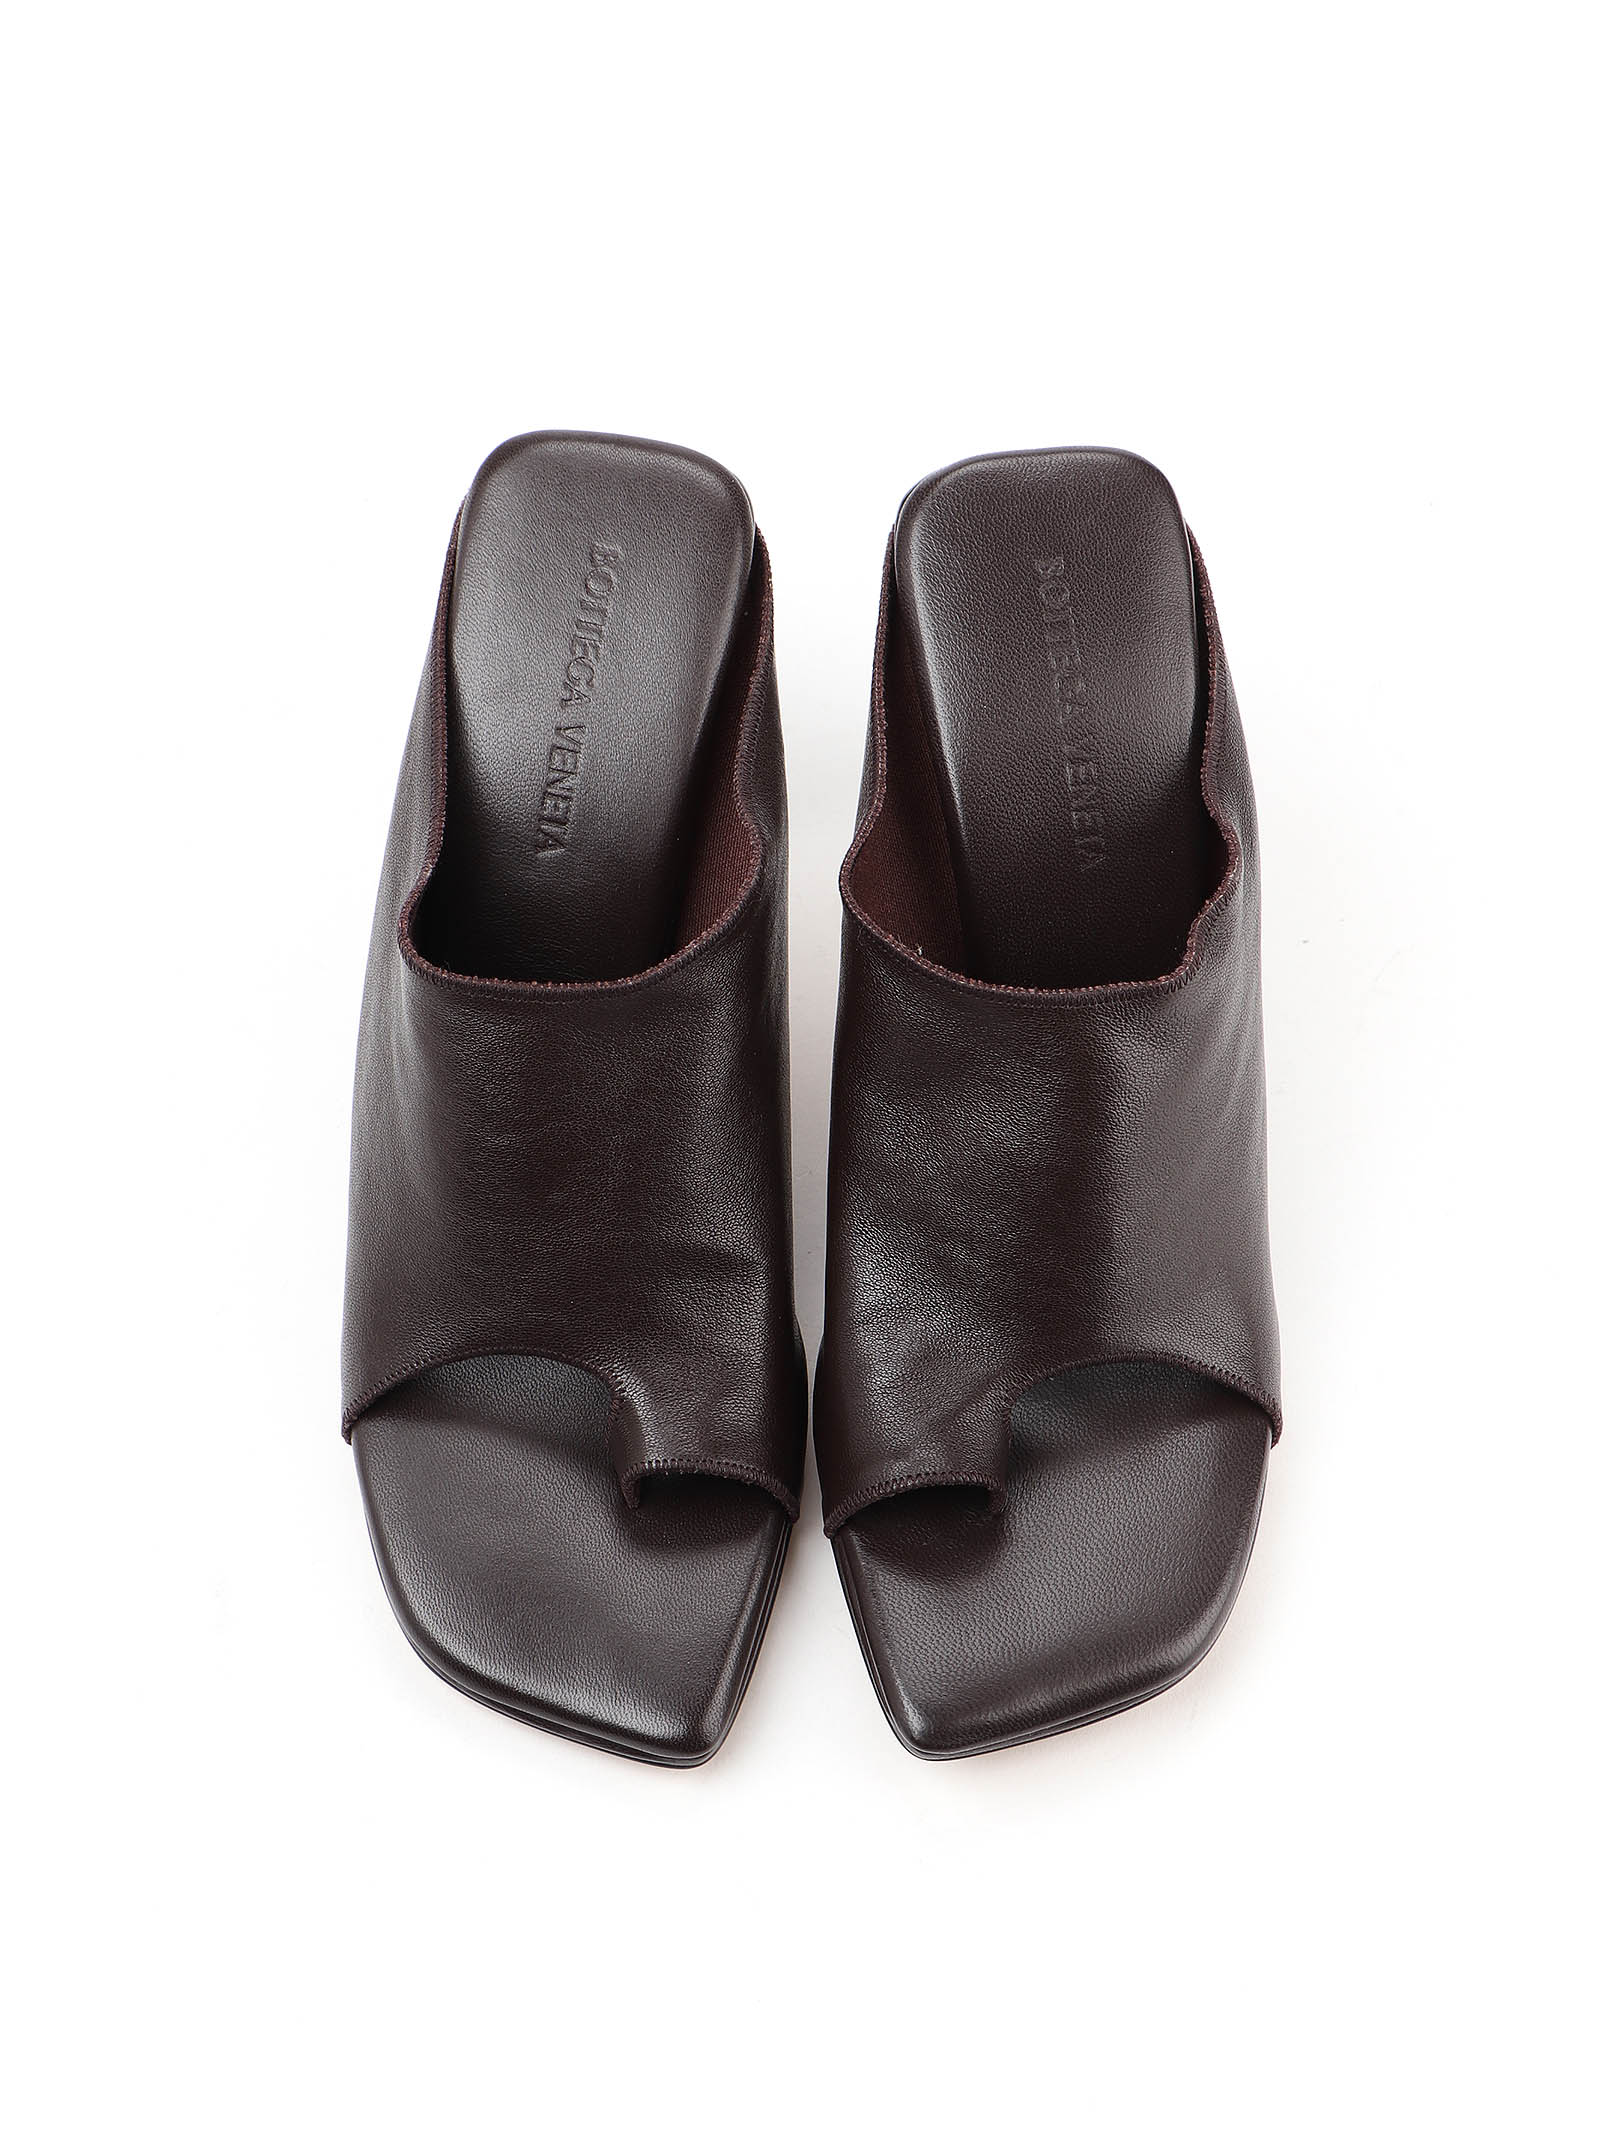 Picture of Bottega Veneta | Sandal